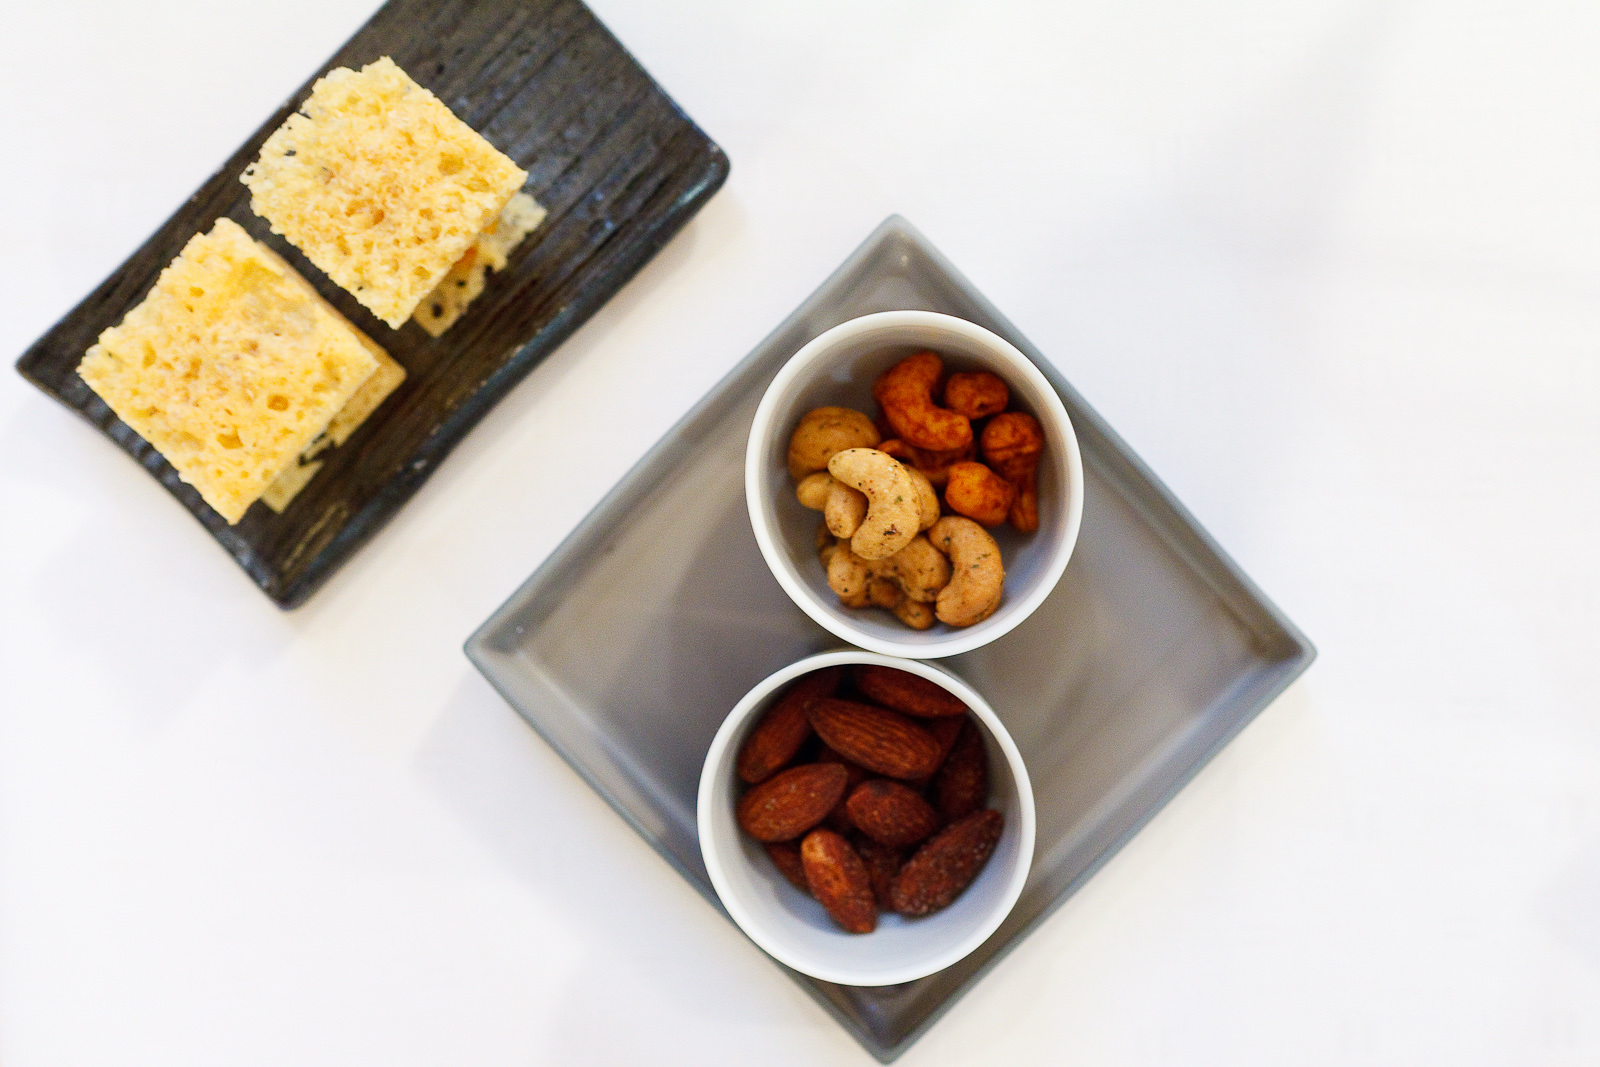 Amuse Bouche 2: Smoked and salted almonds